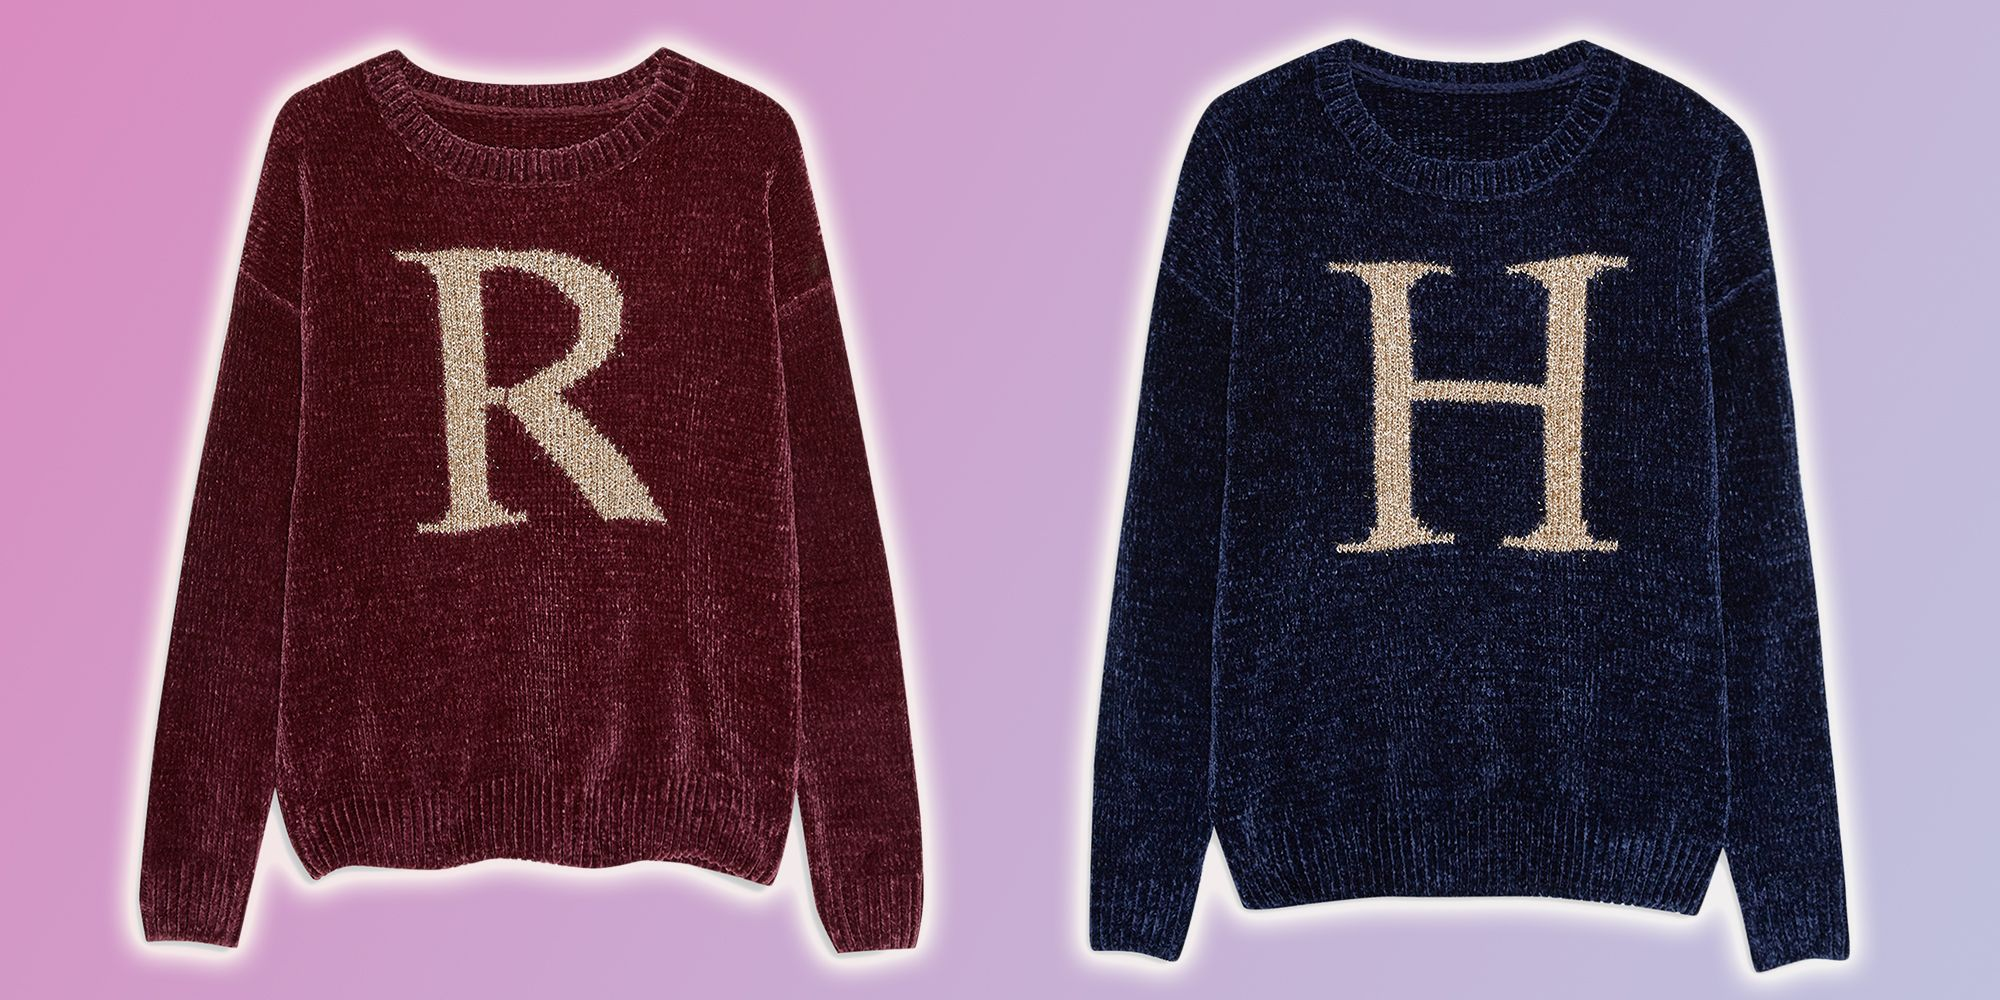 You Can Buy Ron And Harrys Christmas Jumpers From Primark This Year